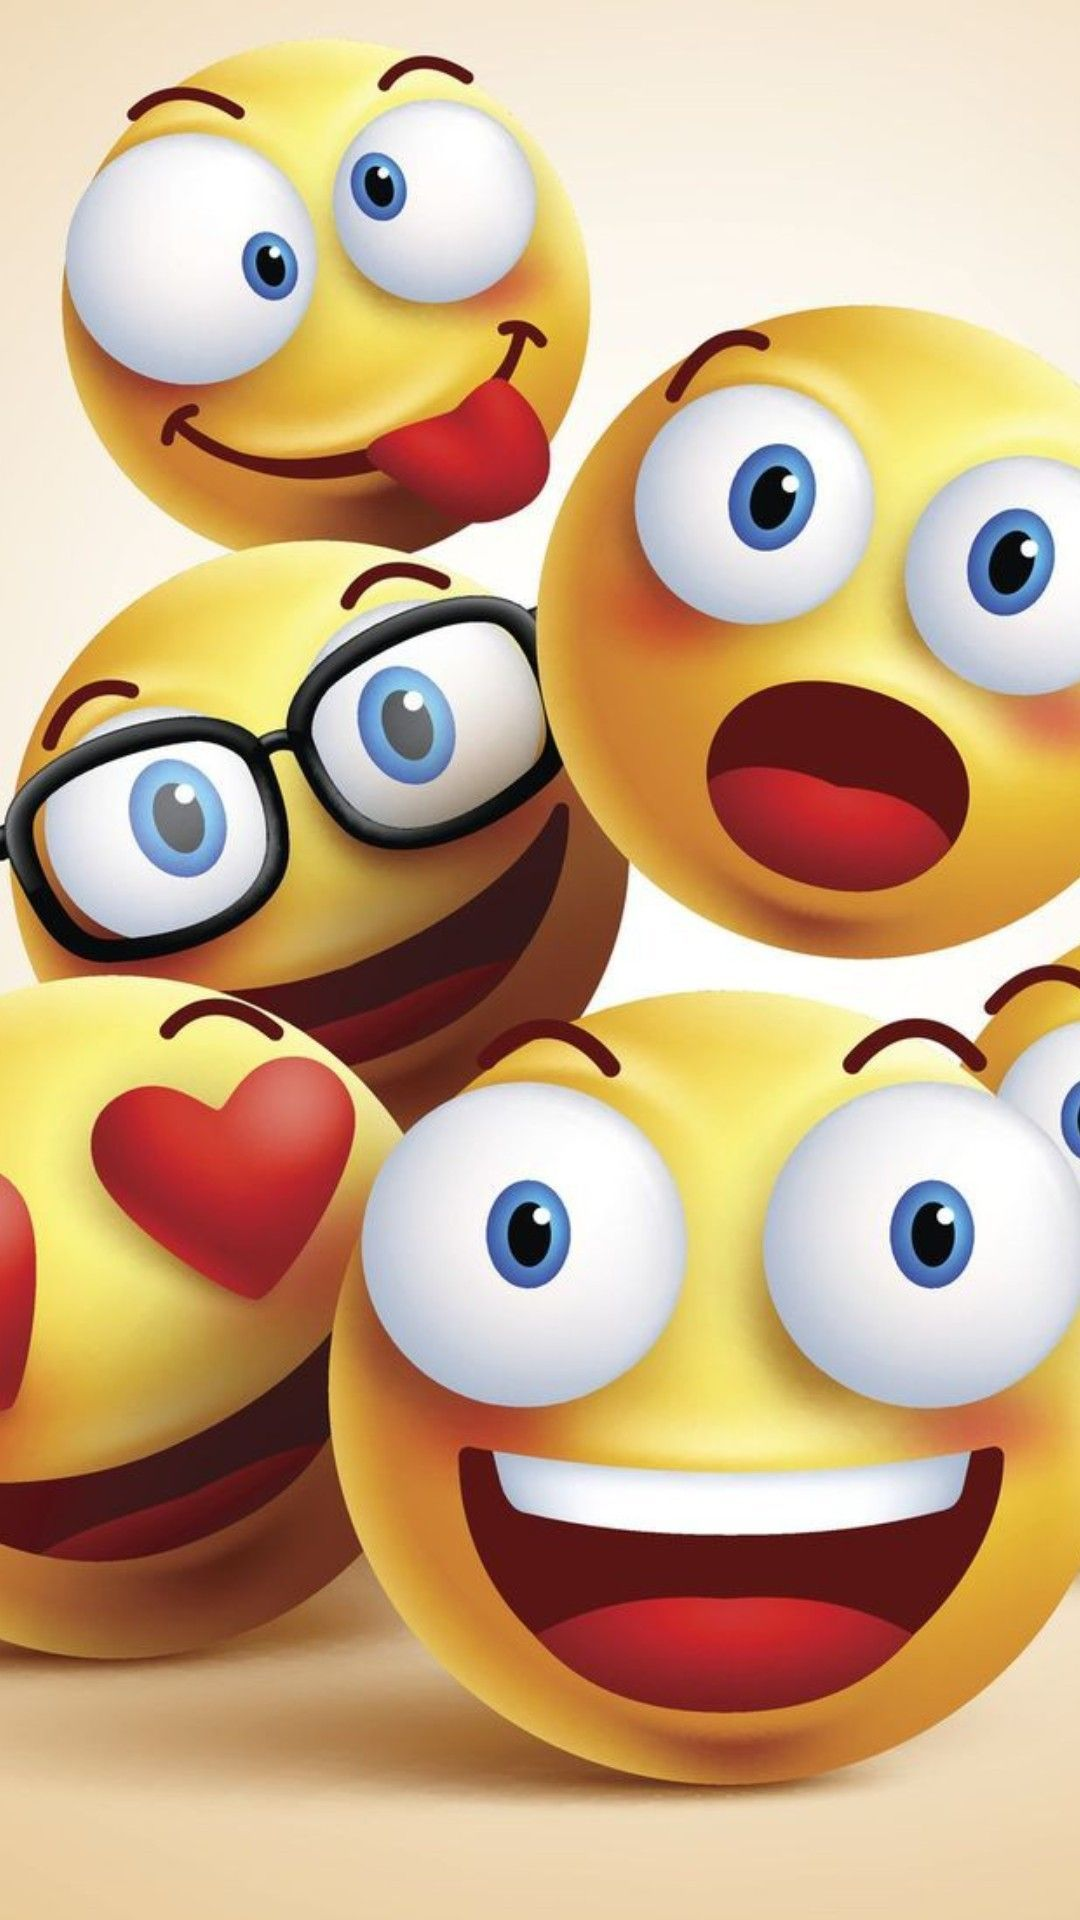 Download Emoji Background For Iphone Wallpaper » Hupages